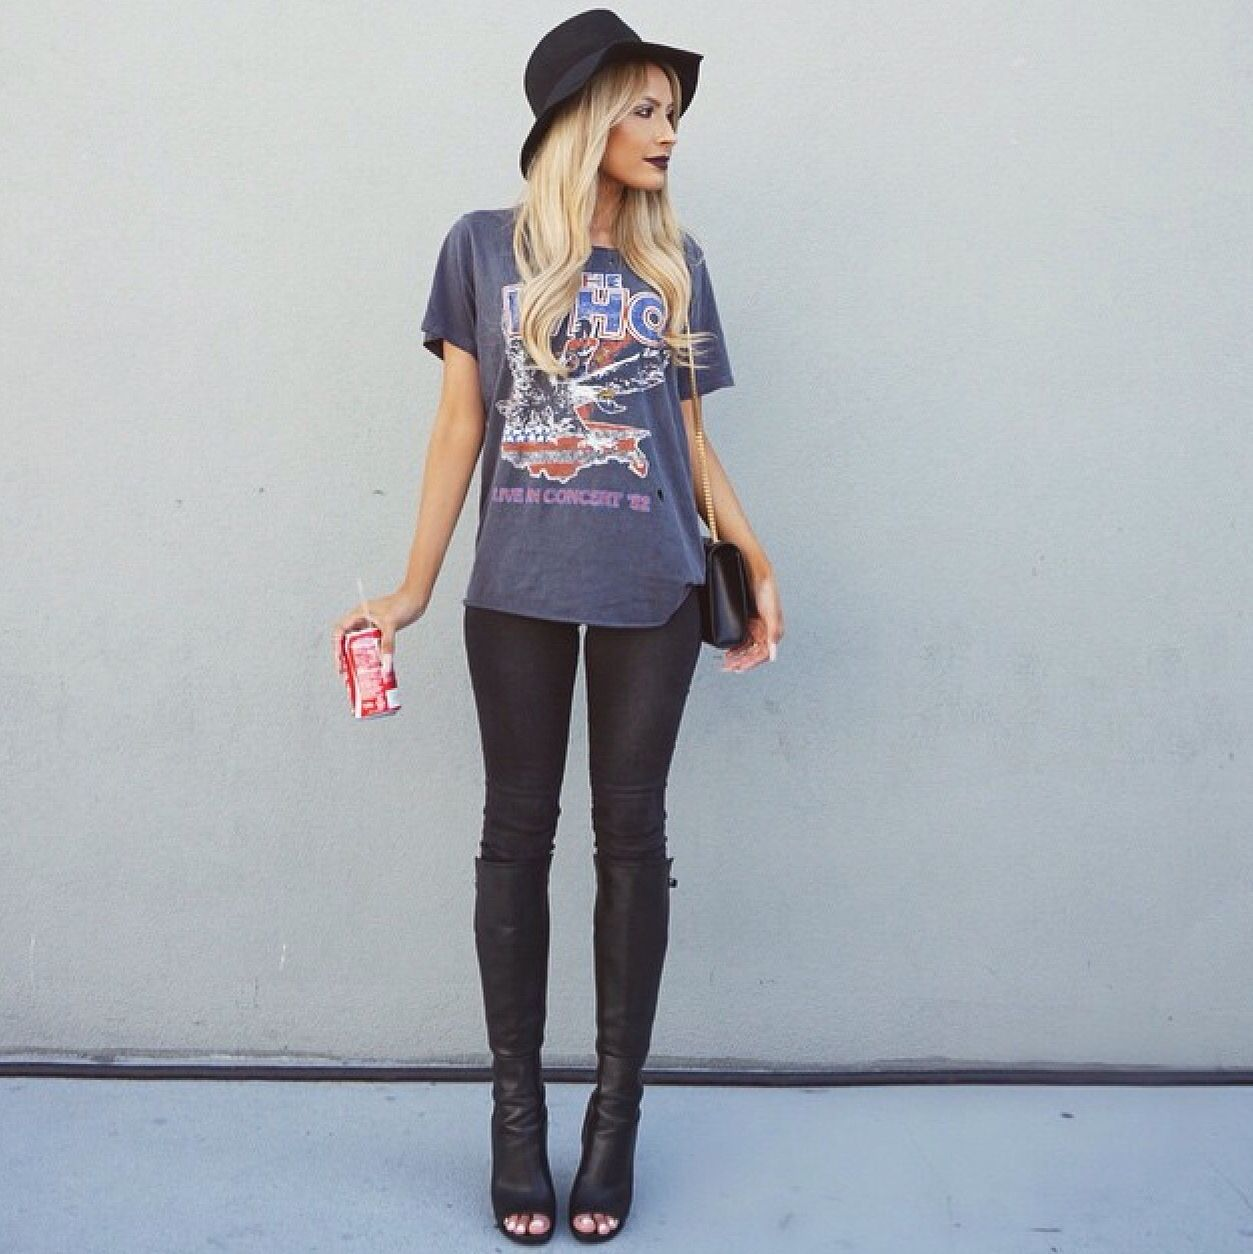 Black t shirt outfit - The Who Band Tee Open Toed Boots Black Hat With A Leather Skirt